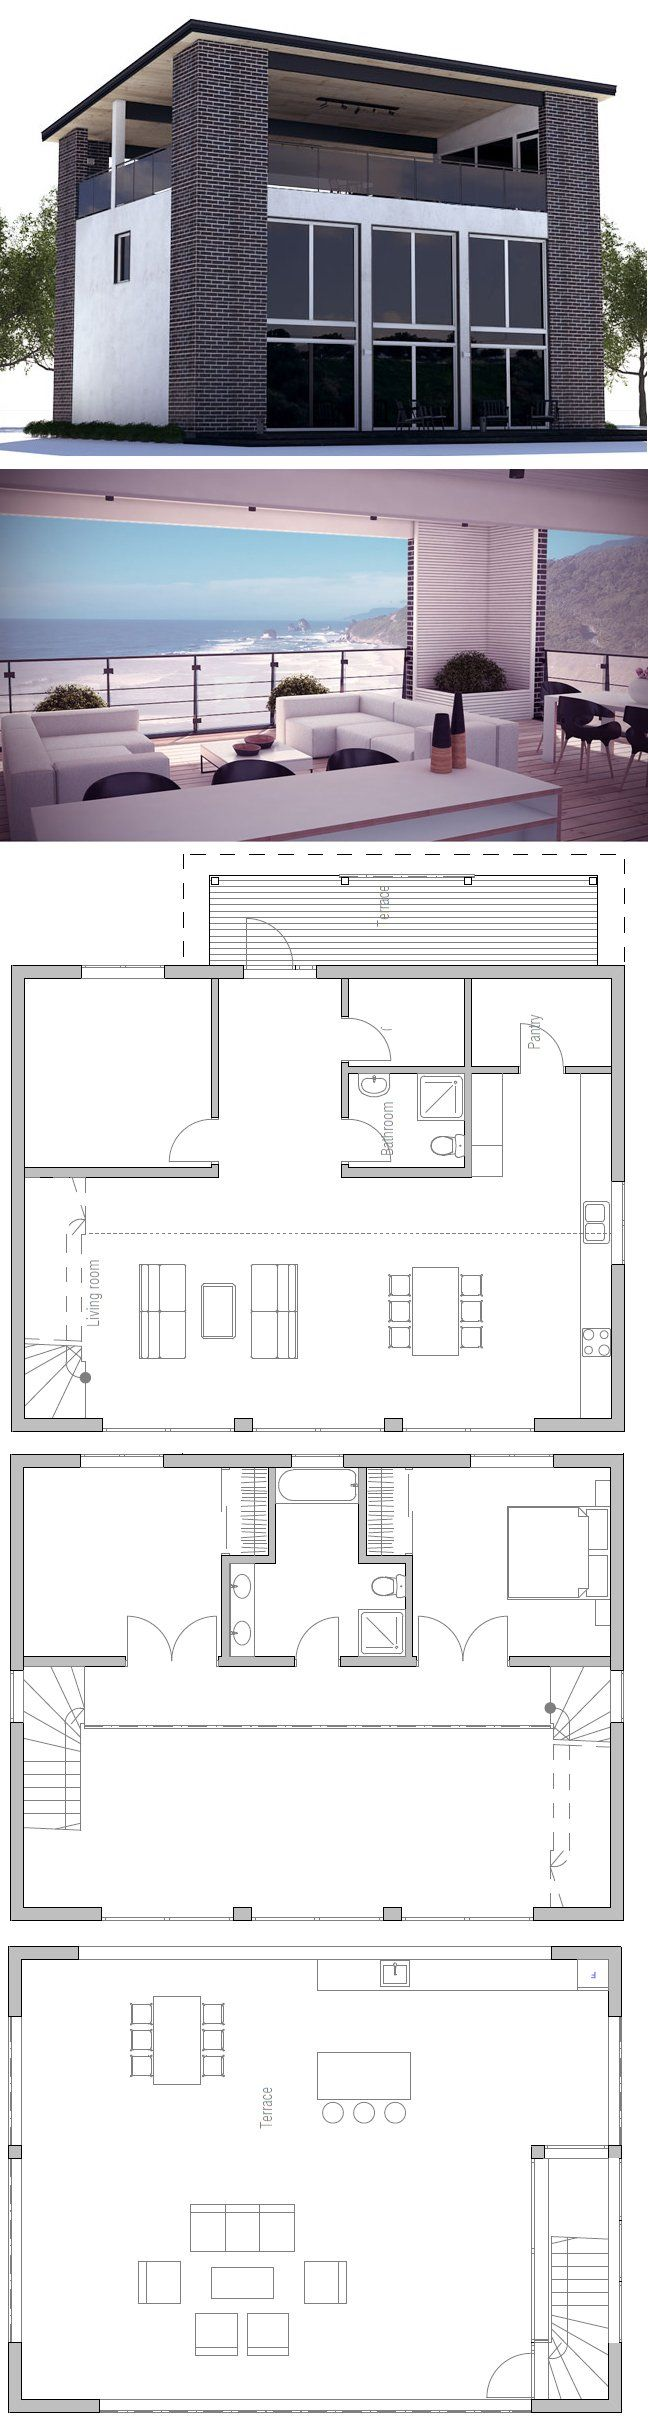 best 25 modern house plans ideas on pinterest modern house modern house plan with rooftop terrace three bedrooms high ceilings i don t necessarily love the design of the house but love the incorporating the